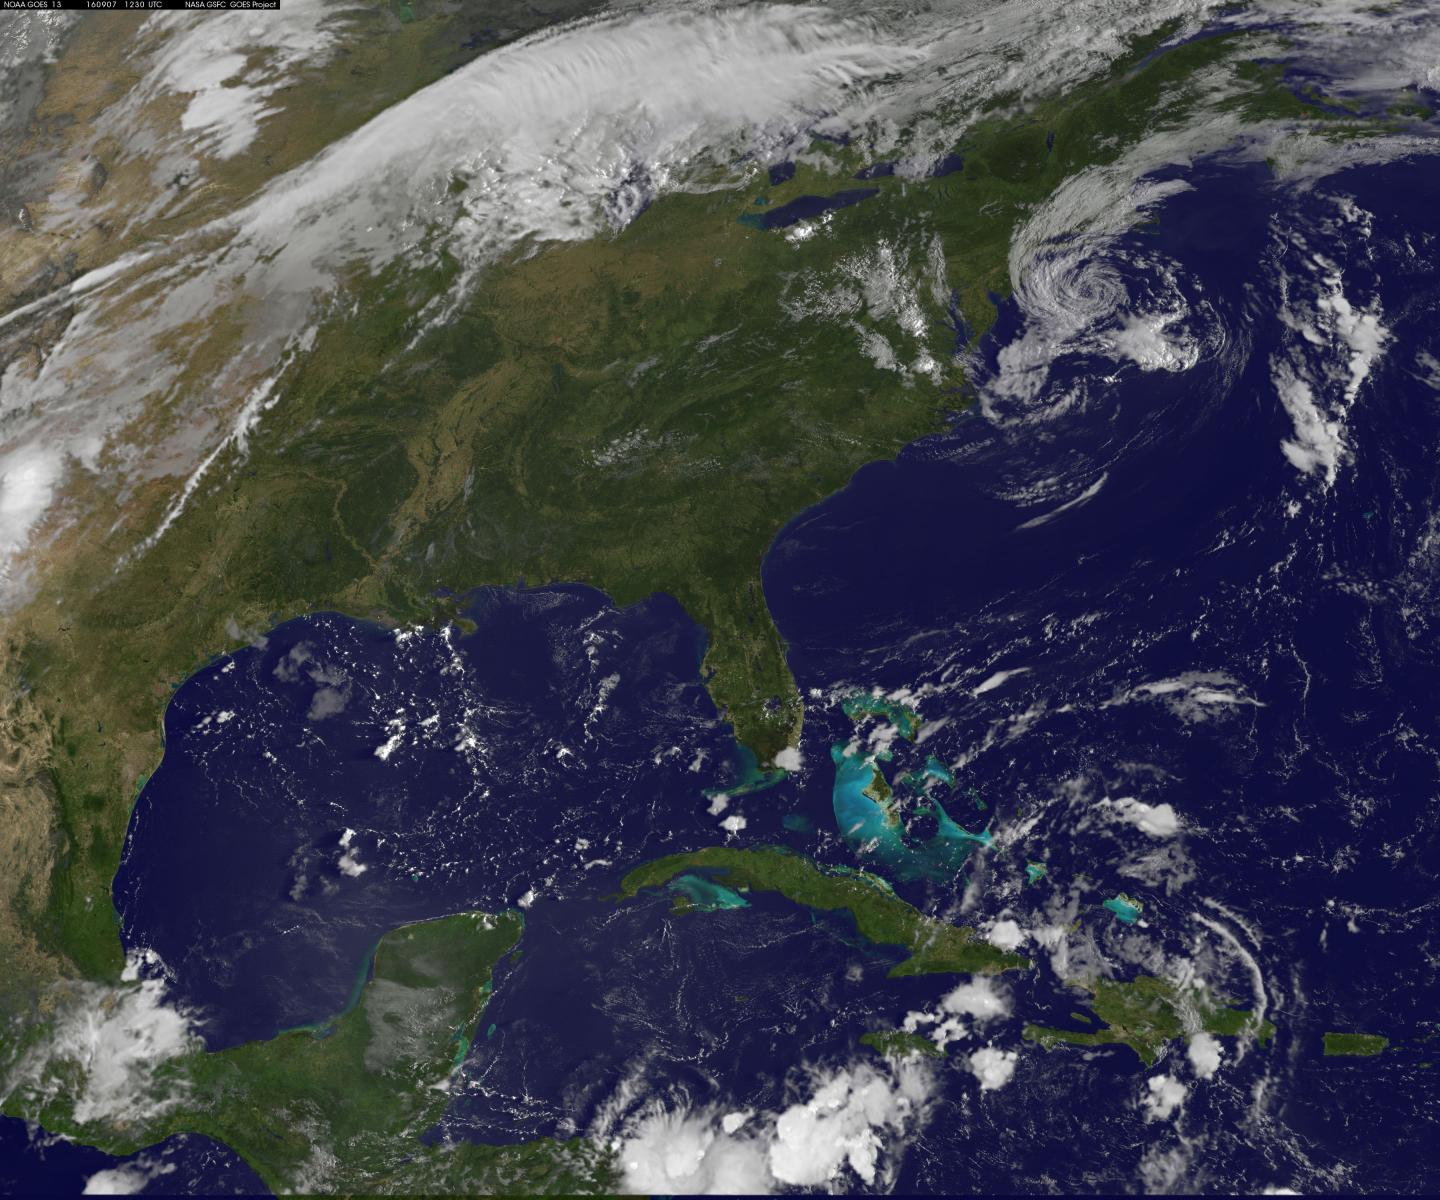 NASA sees post-Tropical Storm Hermine south of Long Island